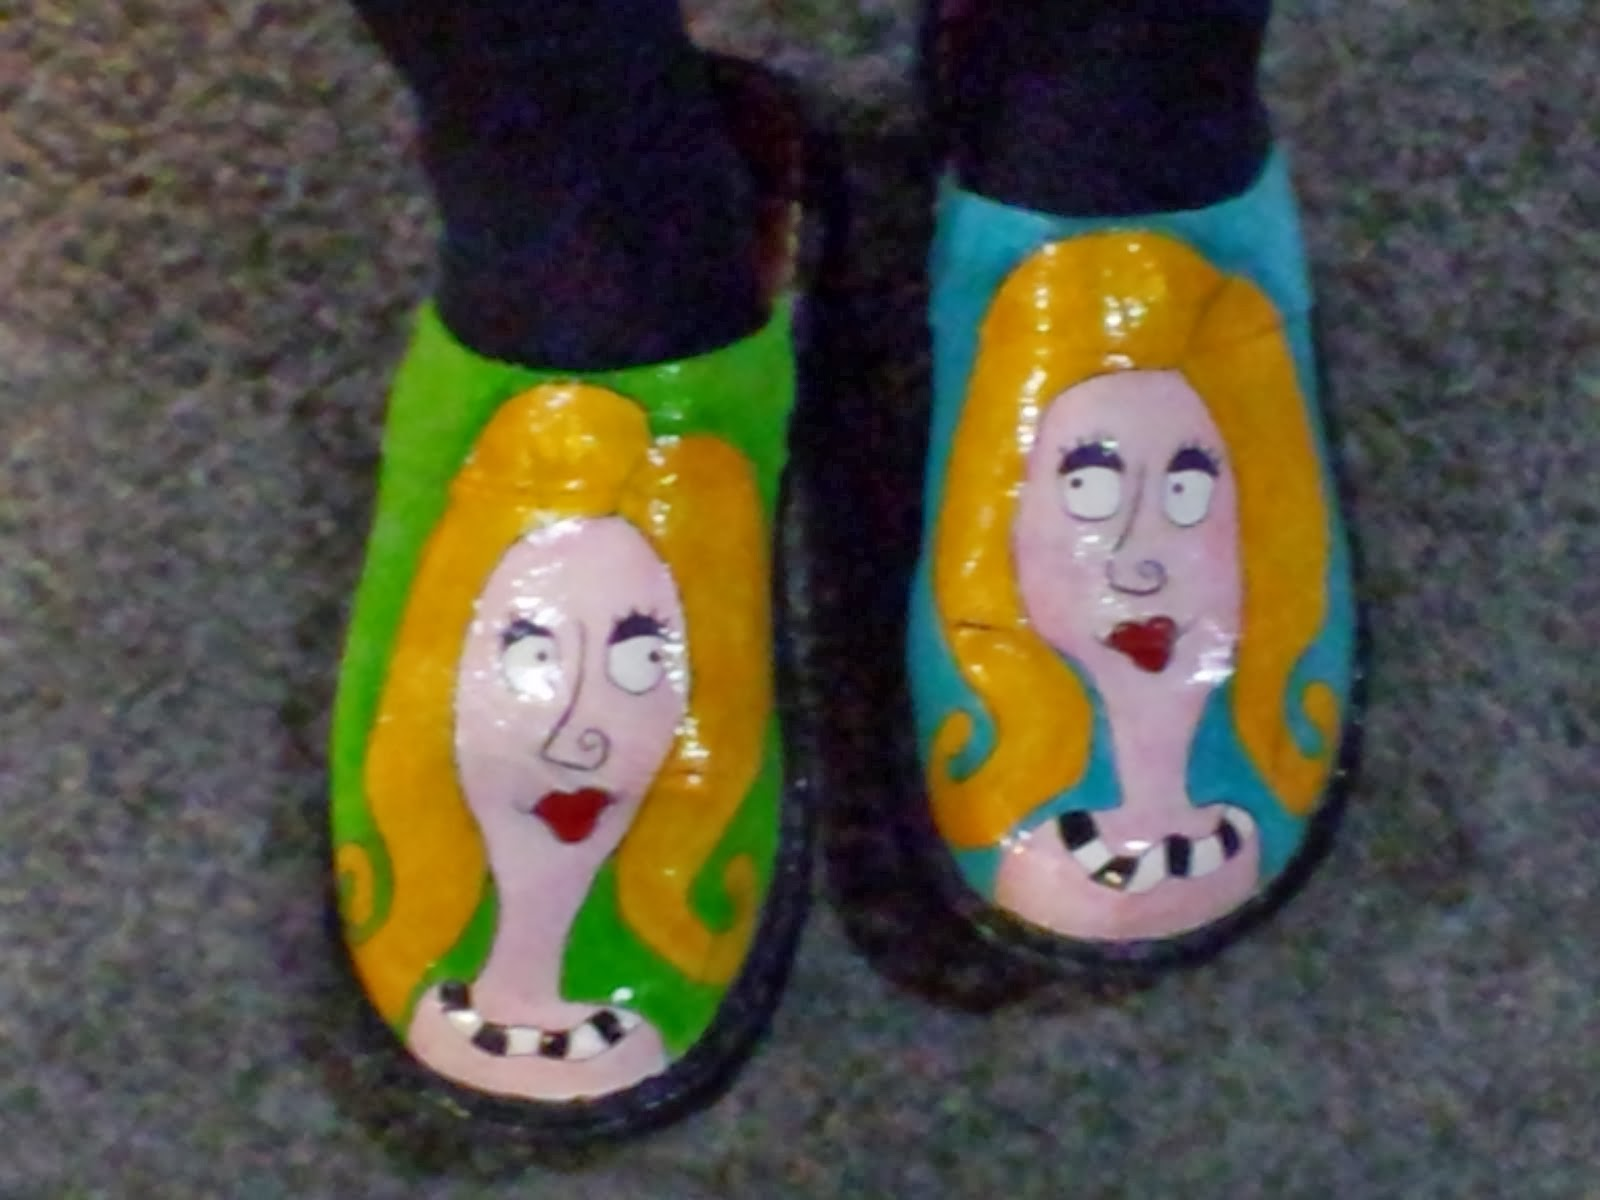 Maggie from Wyoming Paints her own shoes